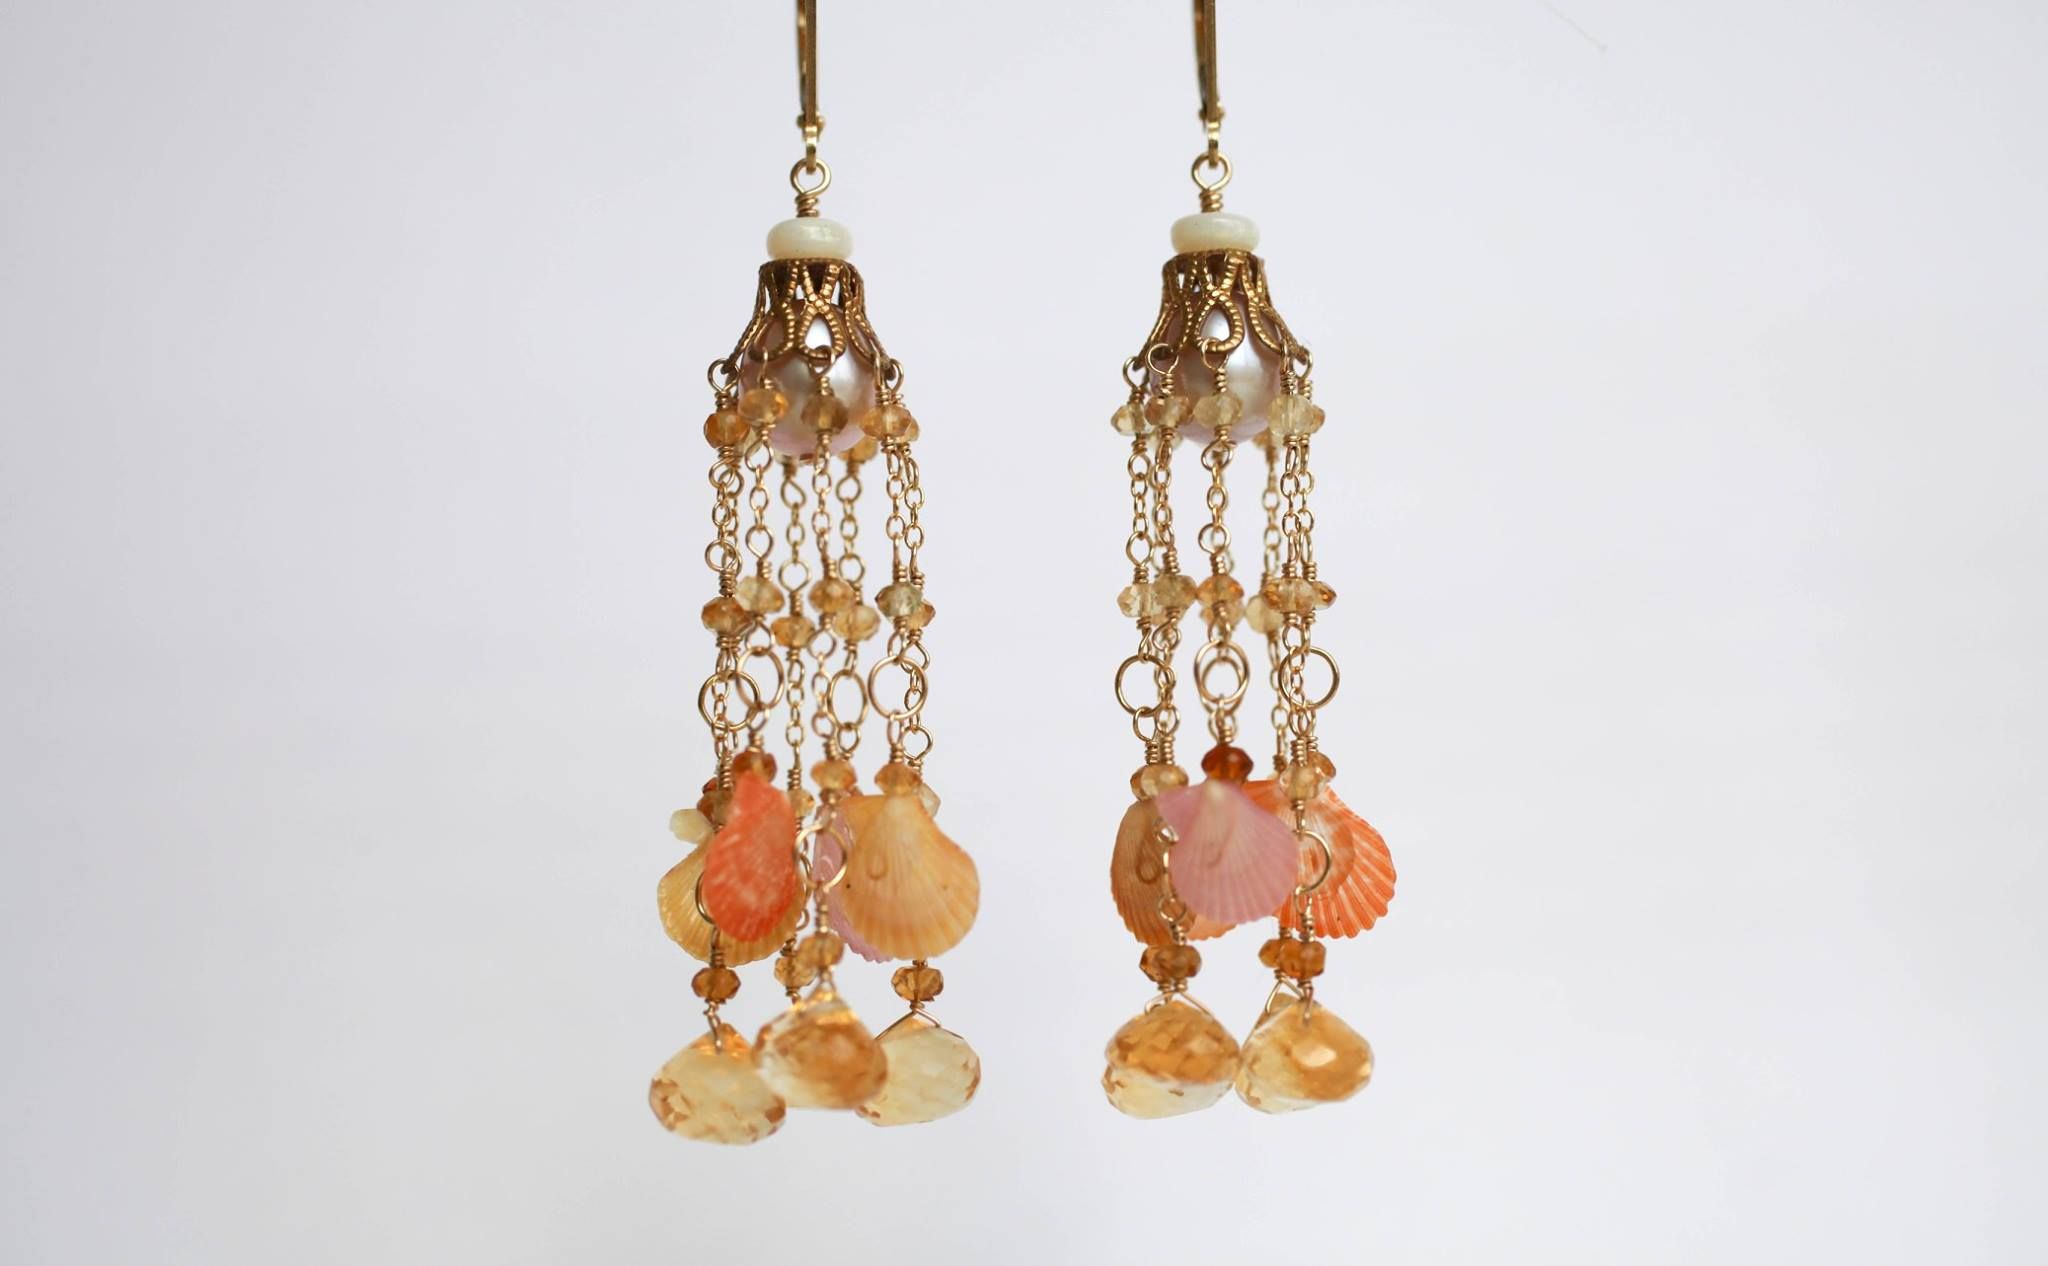 Freshwater fish kauai - Www Adovefinejewelry Com Deluxe Jelly Fish Tassel Earrings Dripping In Citrine Briolettes And